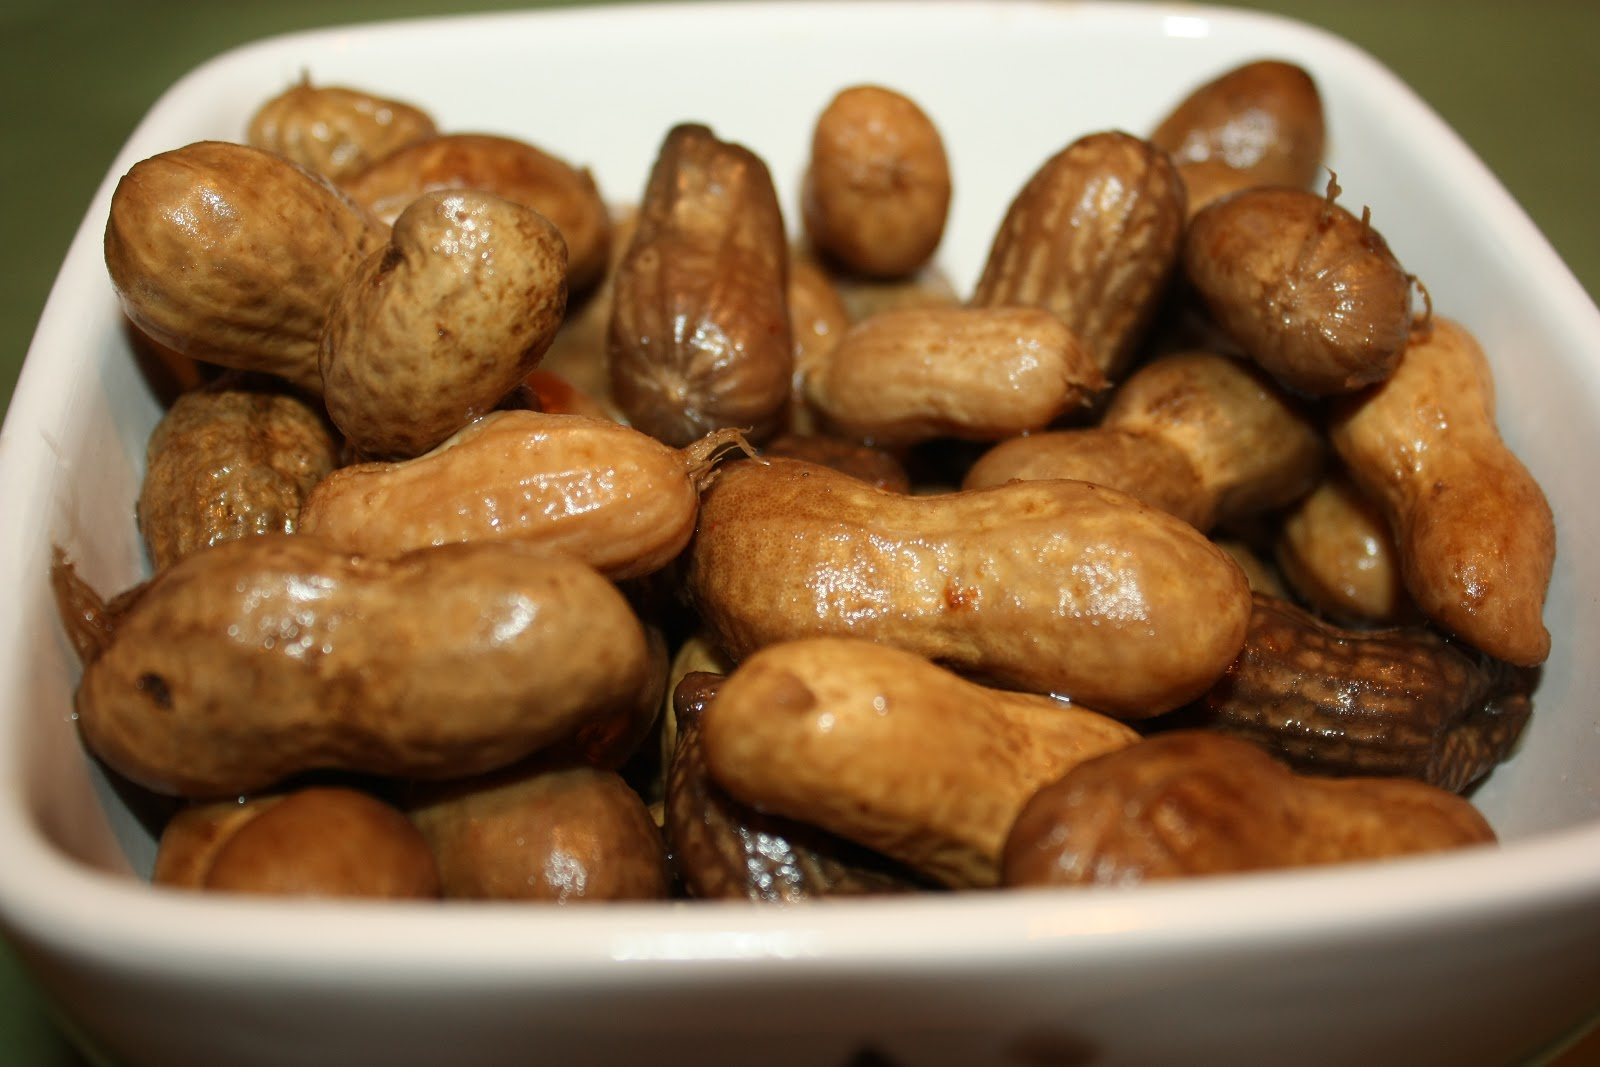 Growing Peanuts At Home: Boiled Peanuts – Carolina Food ...